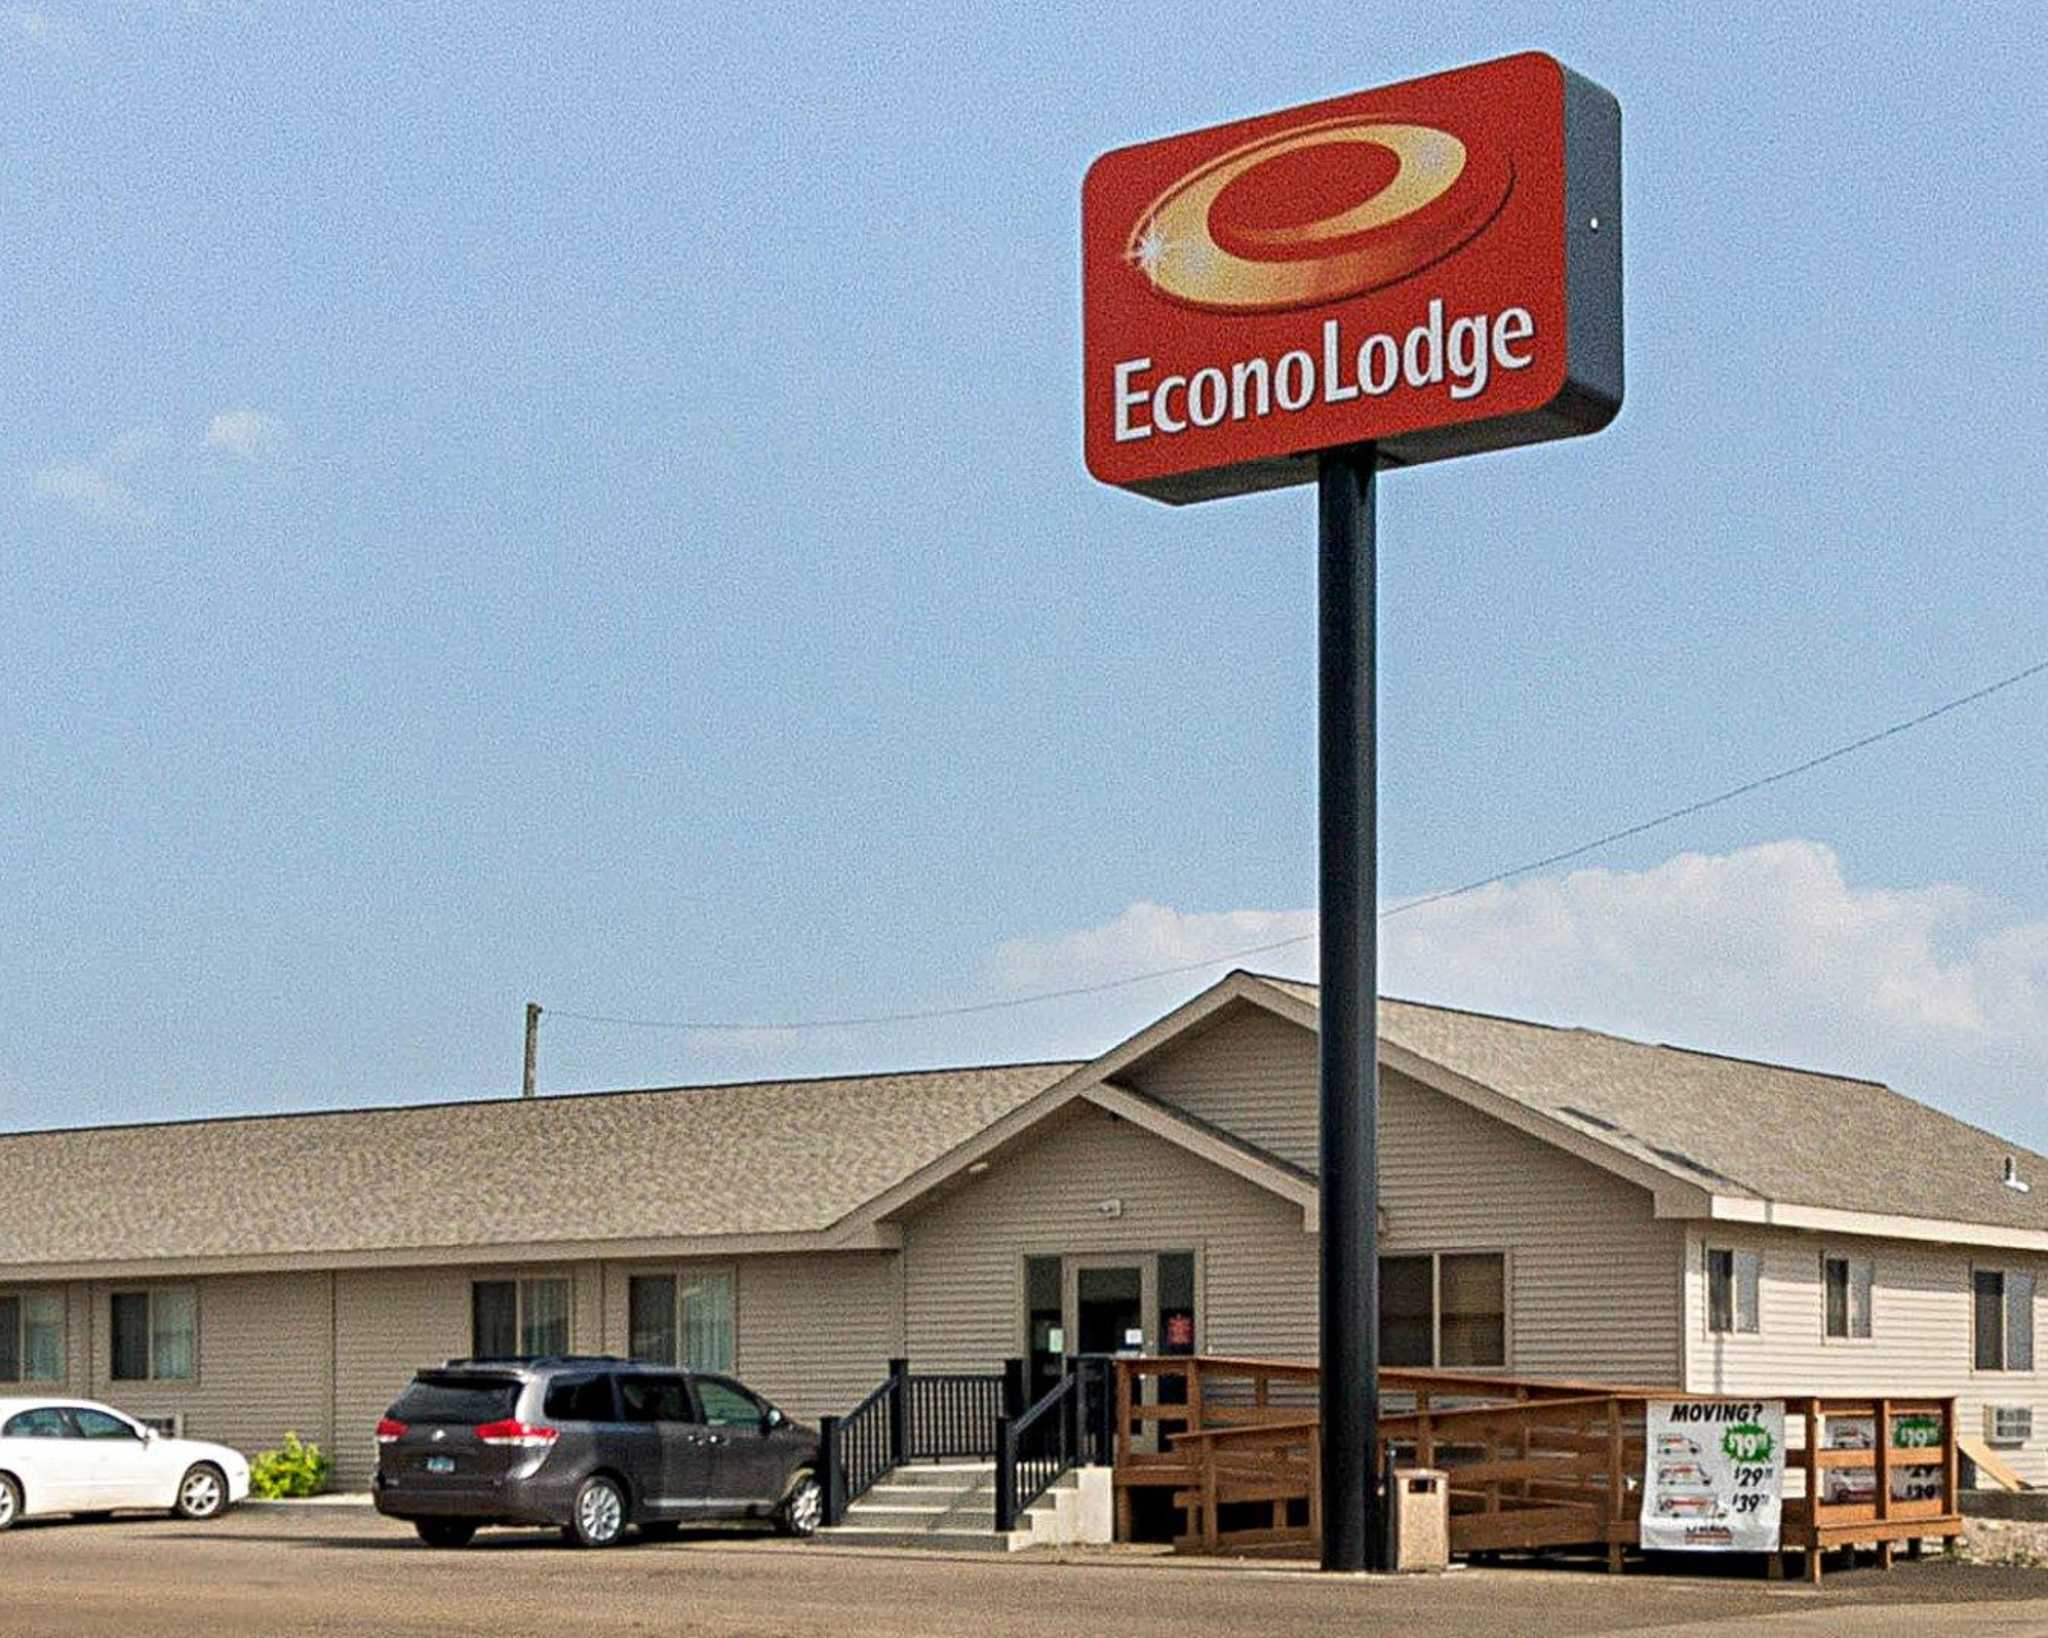 Econo Lodge Jamestown North Dakota Nd Localdatabase Com